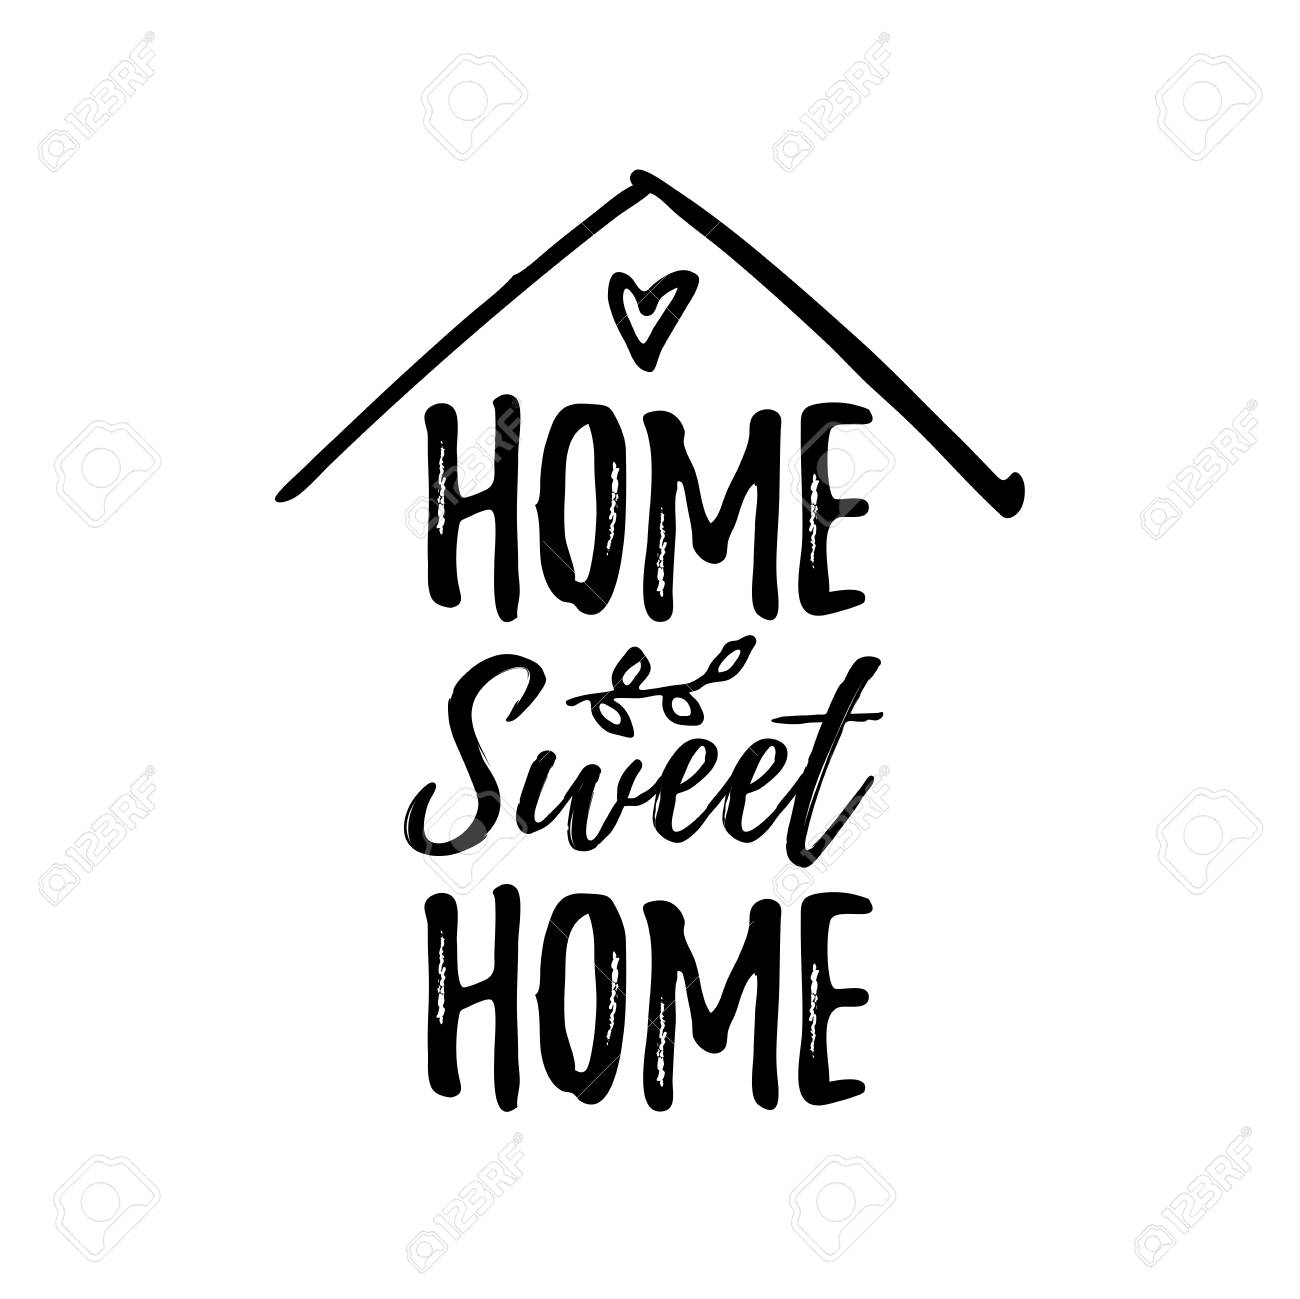 Home sweet home. Typography cozy design for print to poster, t shirt, banner, card, textile. Calligraphic quote Vector illustration. Black text on white background. House shape - 110266417